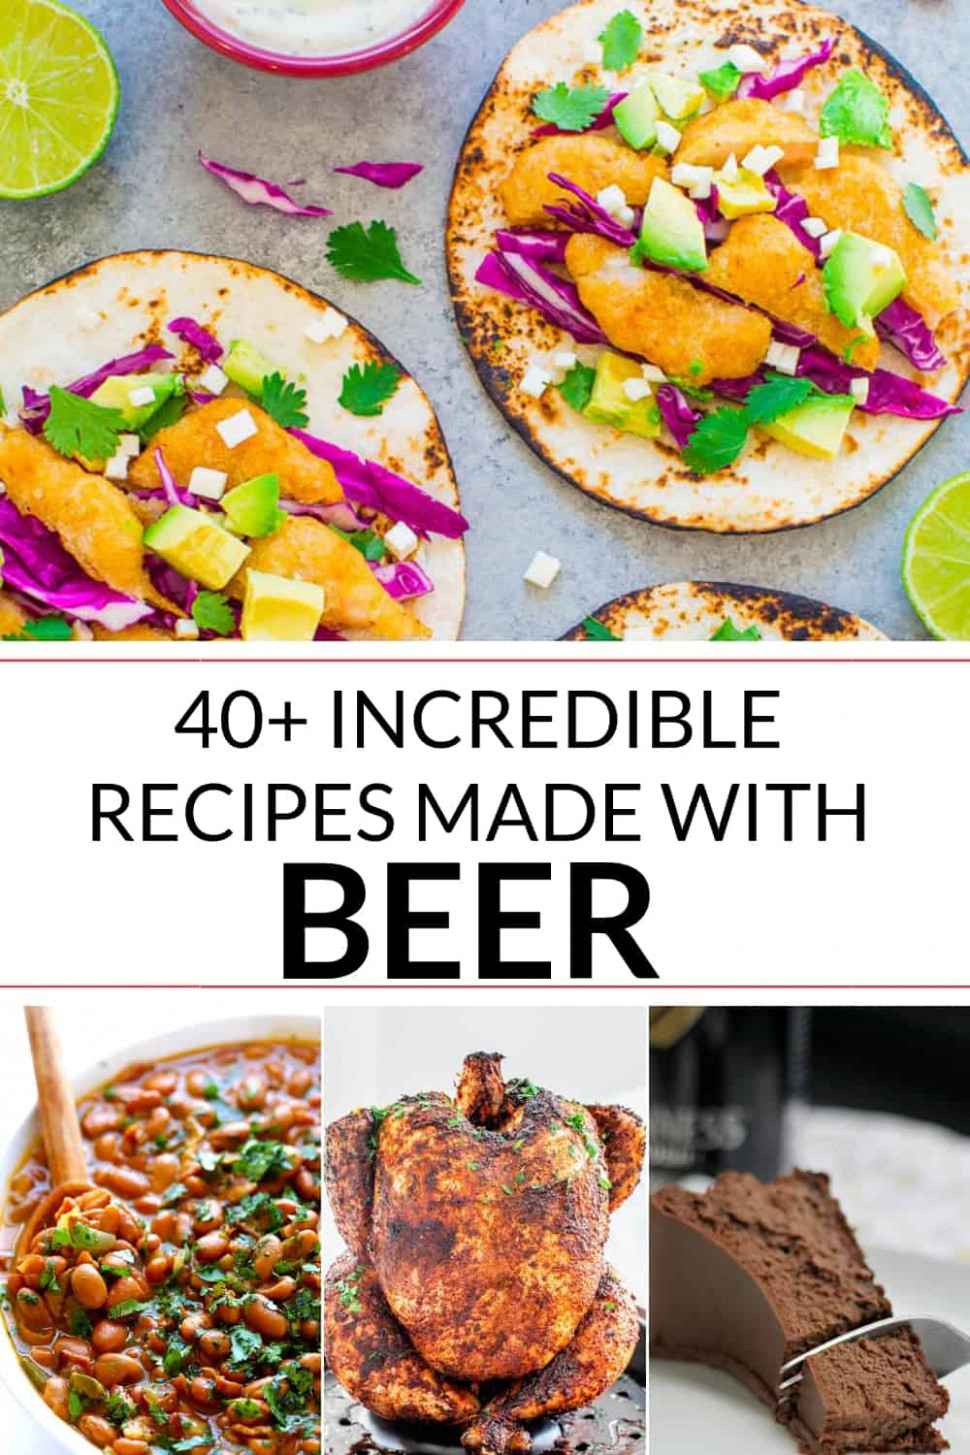 Recipes Made with Beer | It Is a Keeper - food recipes using beer